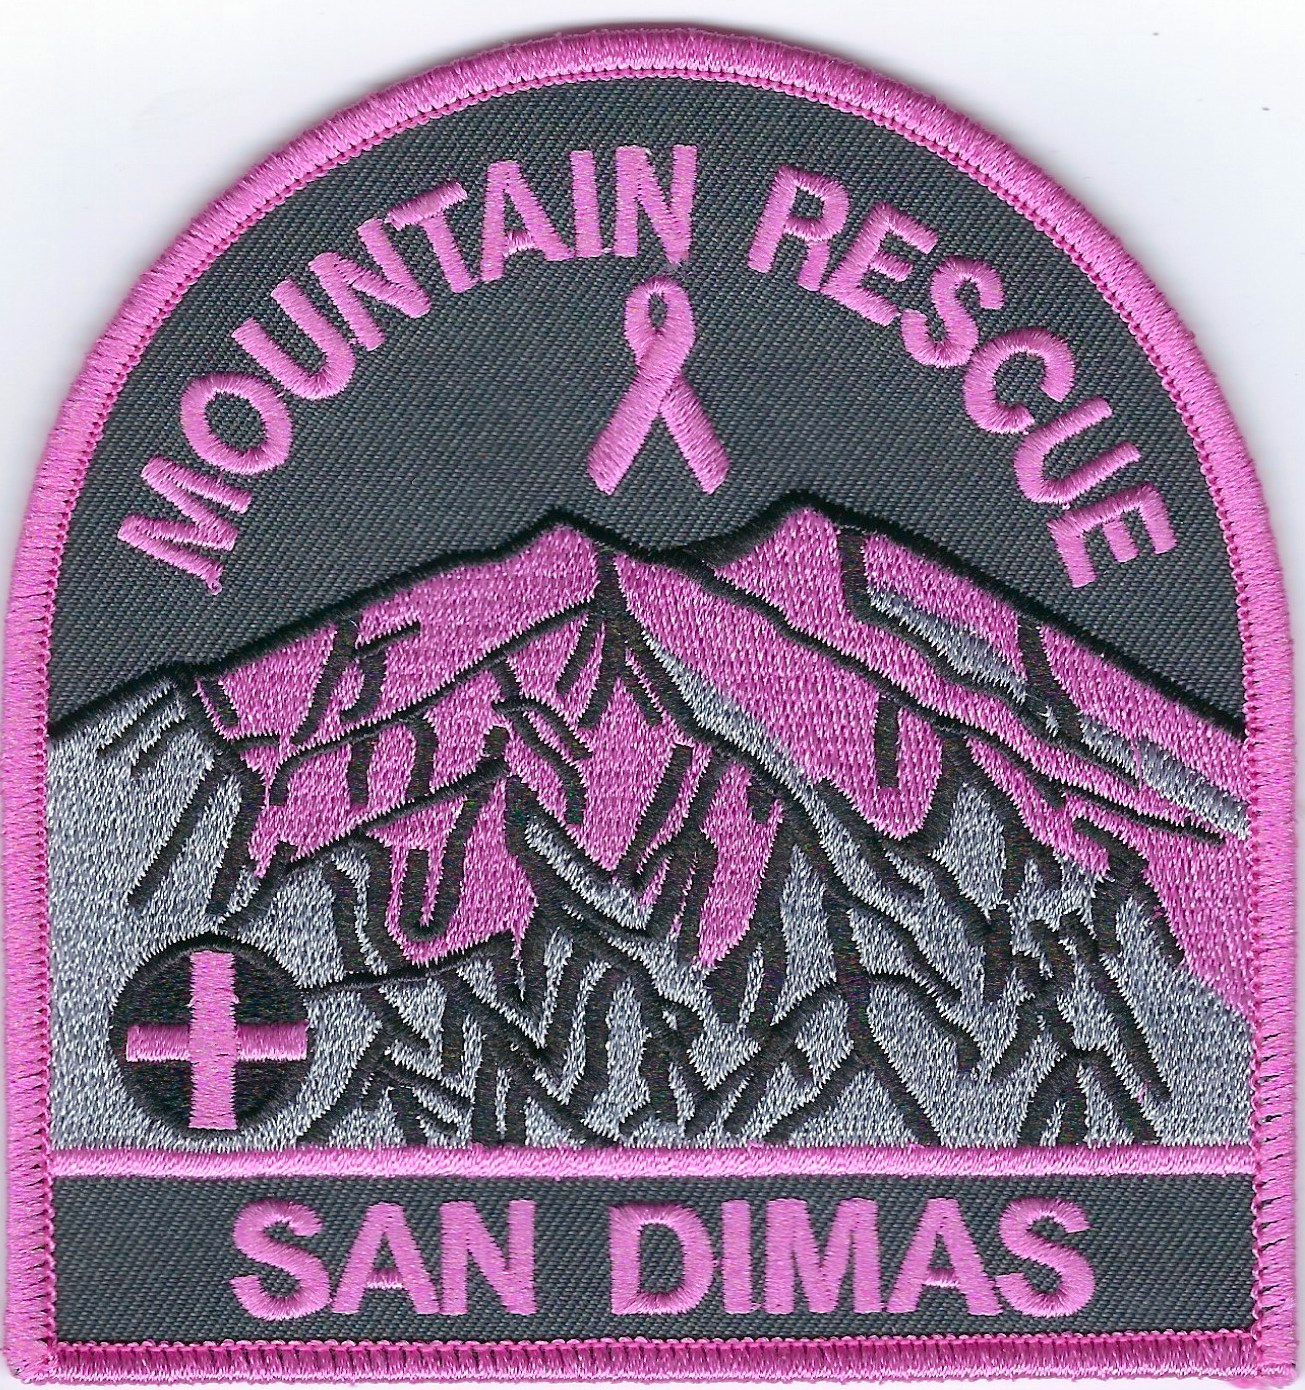 SAN DIMAS PINK - ON WHITE BACKGROUND.jpg